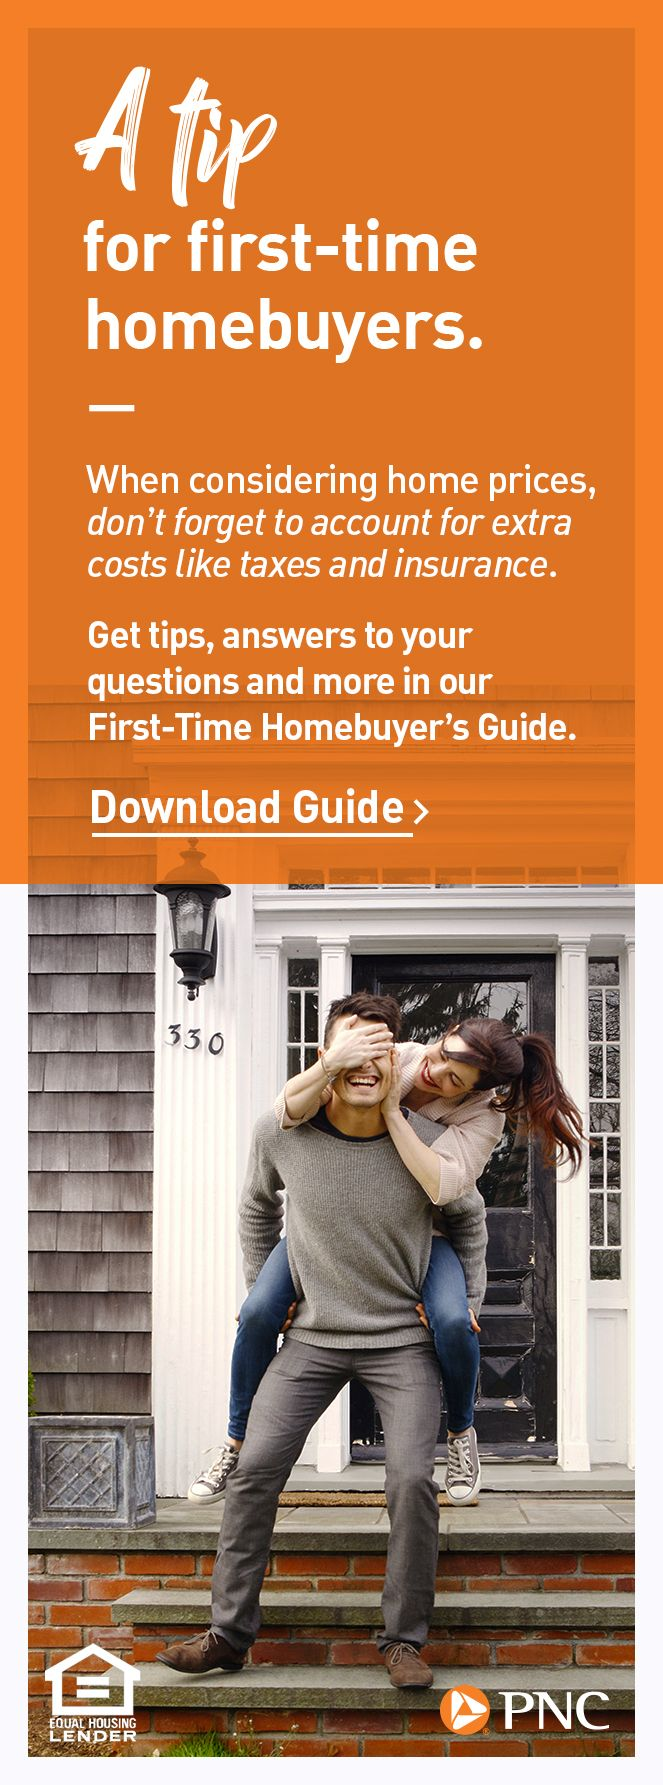 Get more tips and guidance for the homebuying process